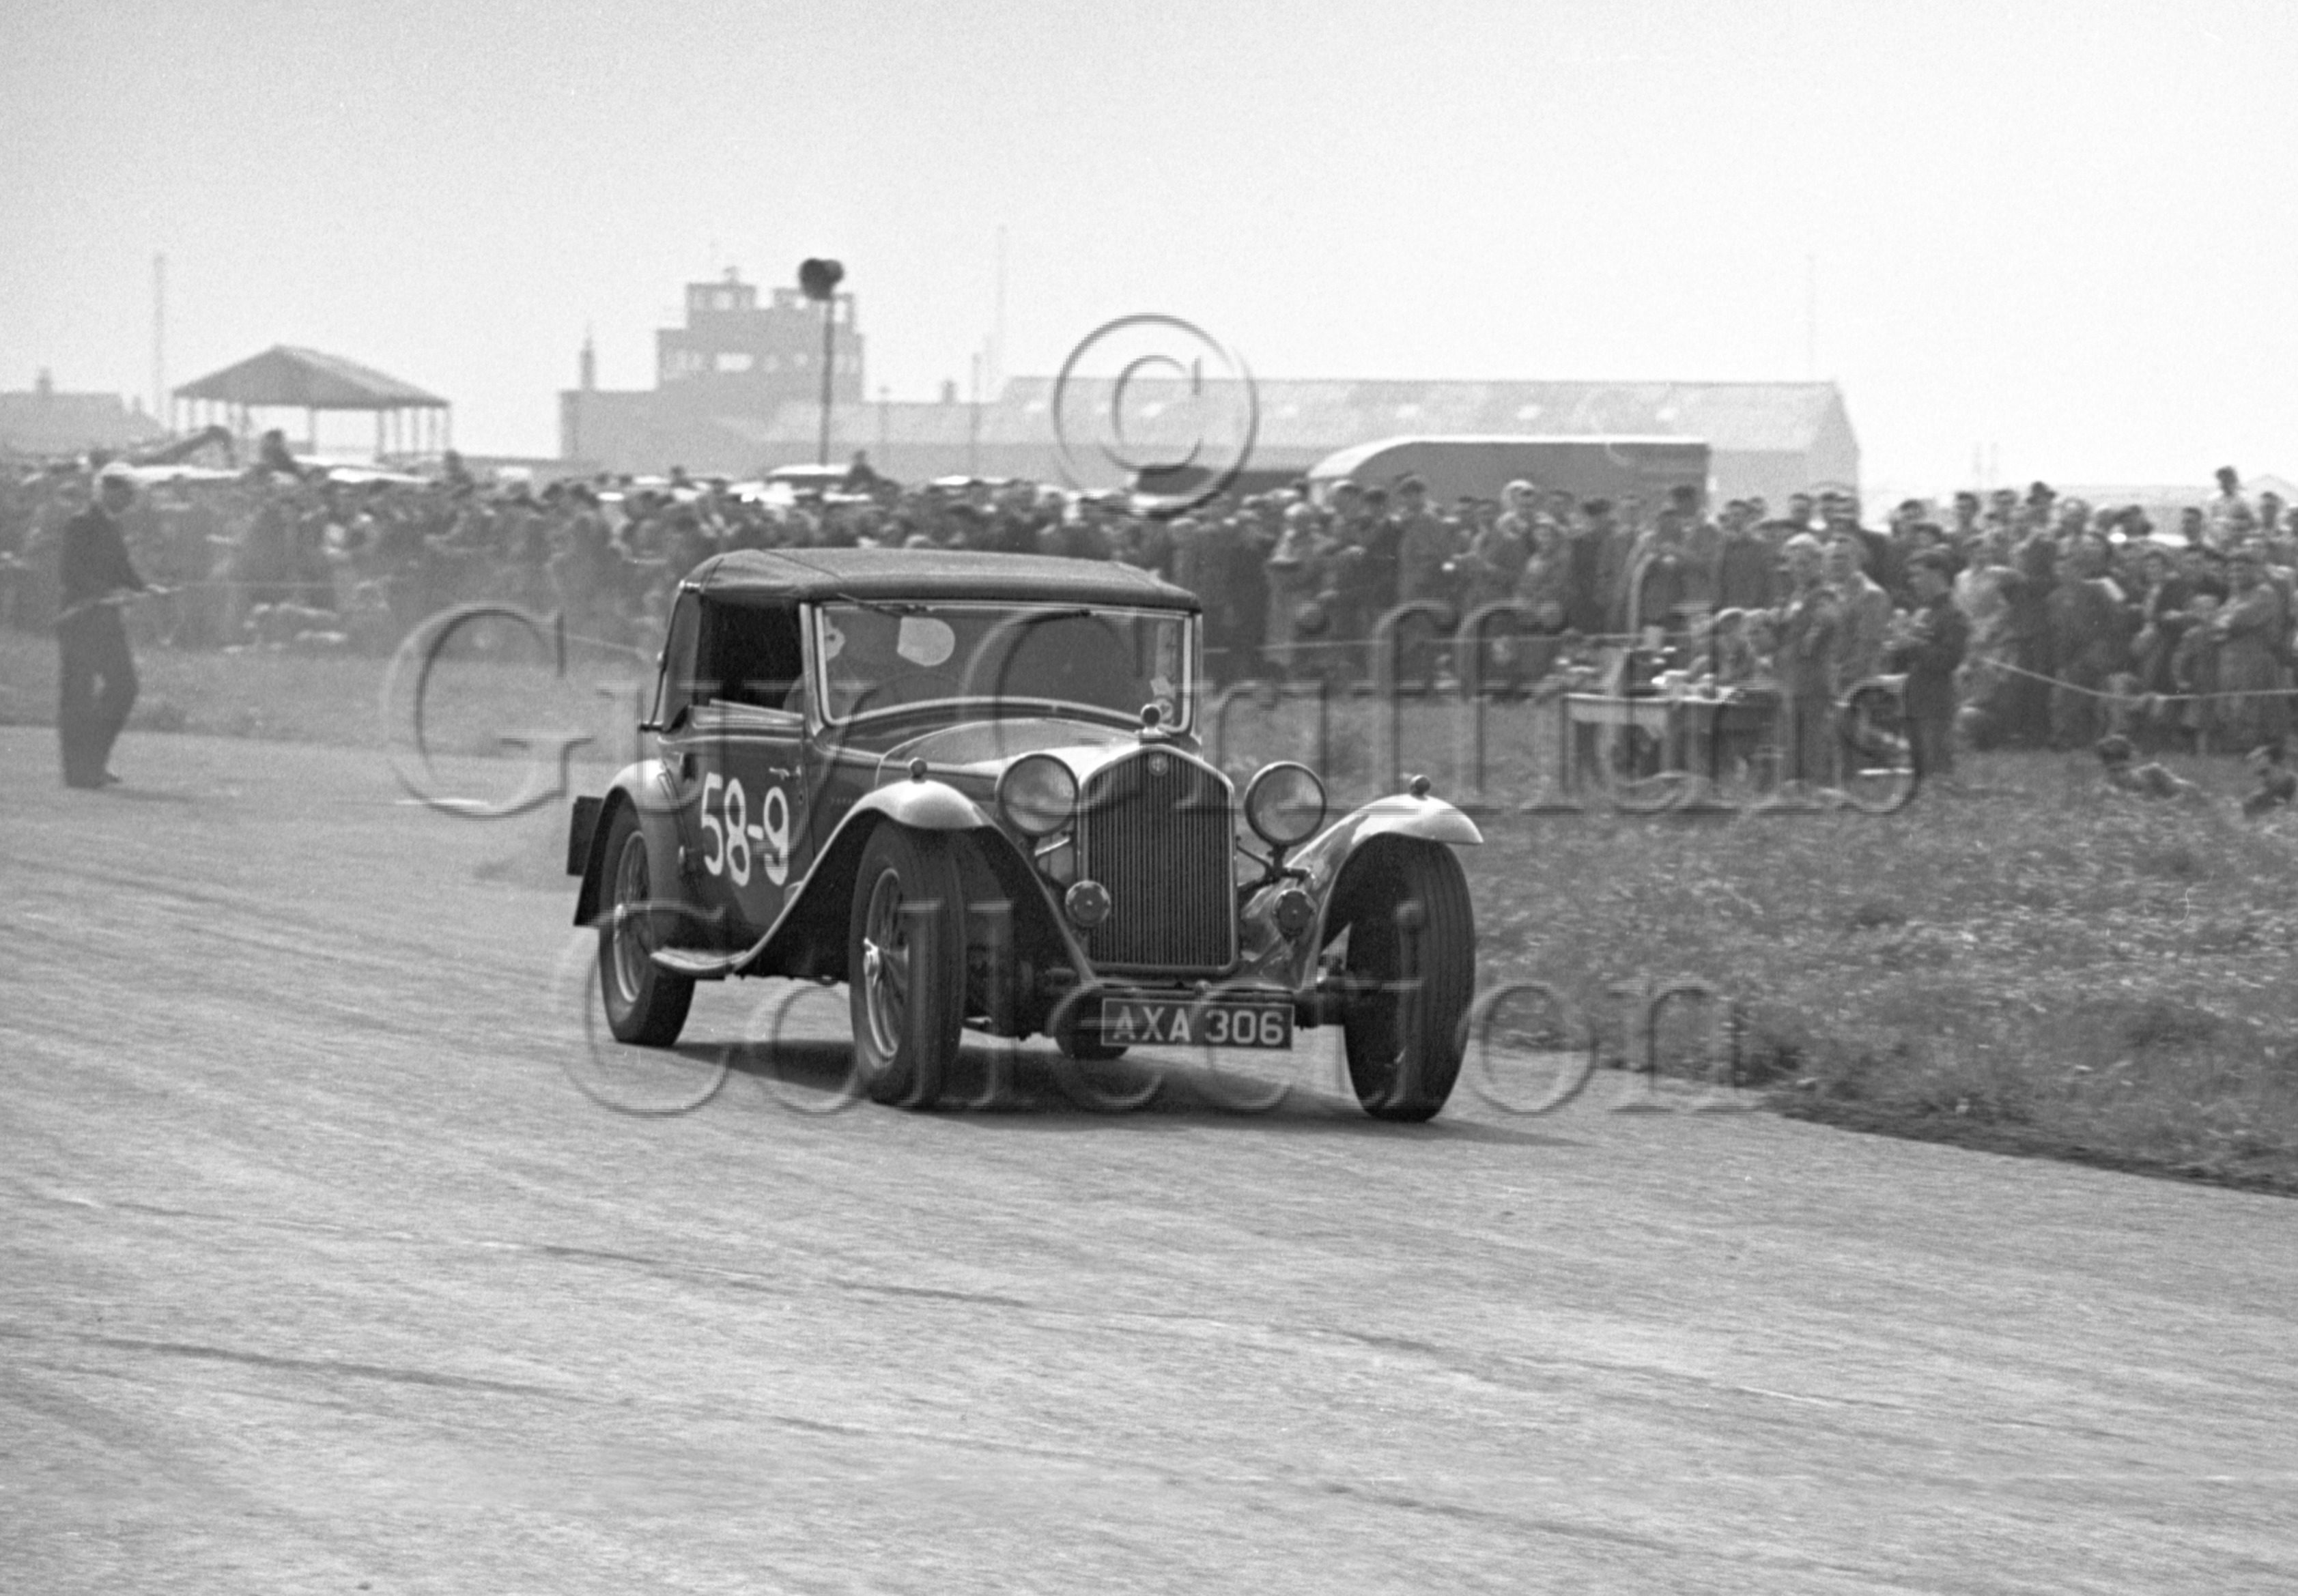 29-692–J-Boothby–Alfa-Romeo–Gravesend–07-05-1950.jpg - The Guy Griffiths Collection